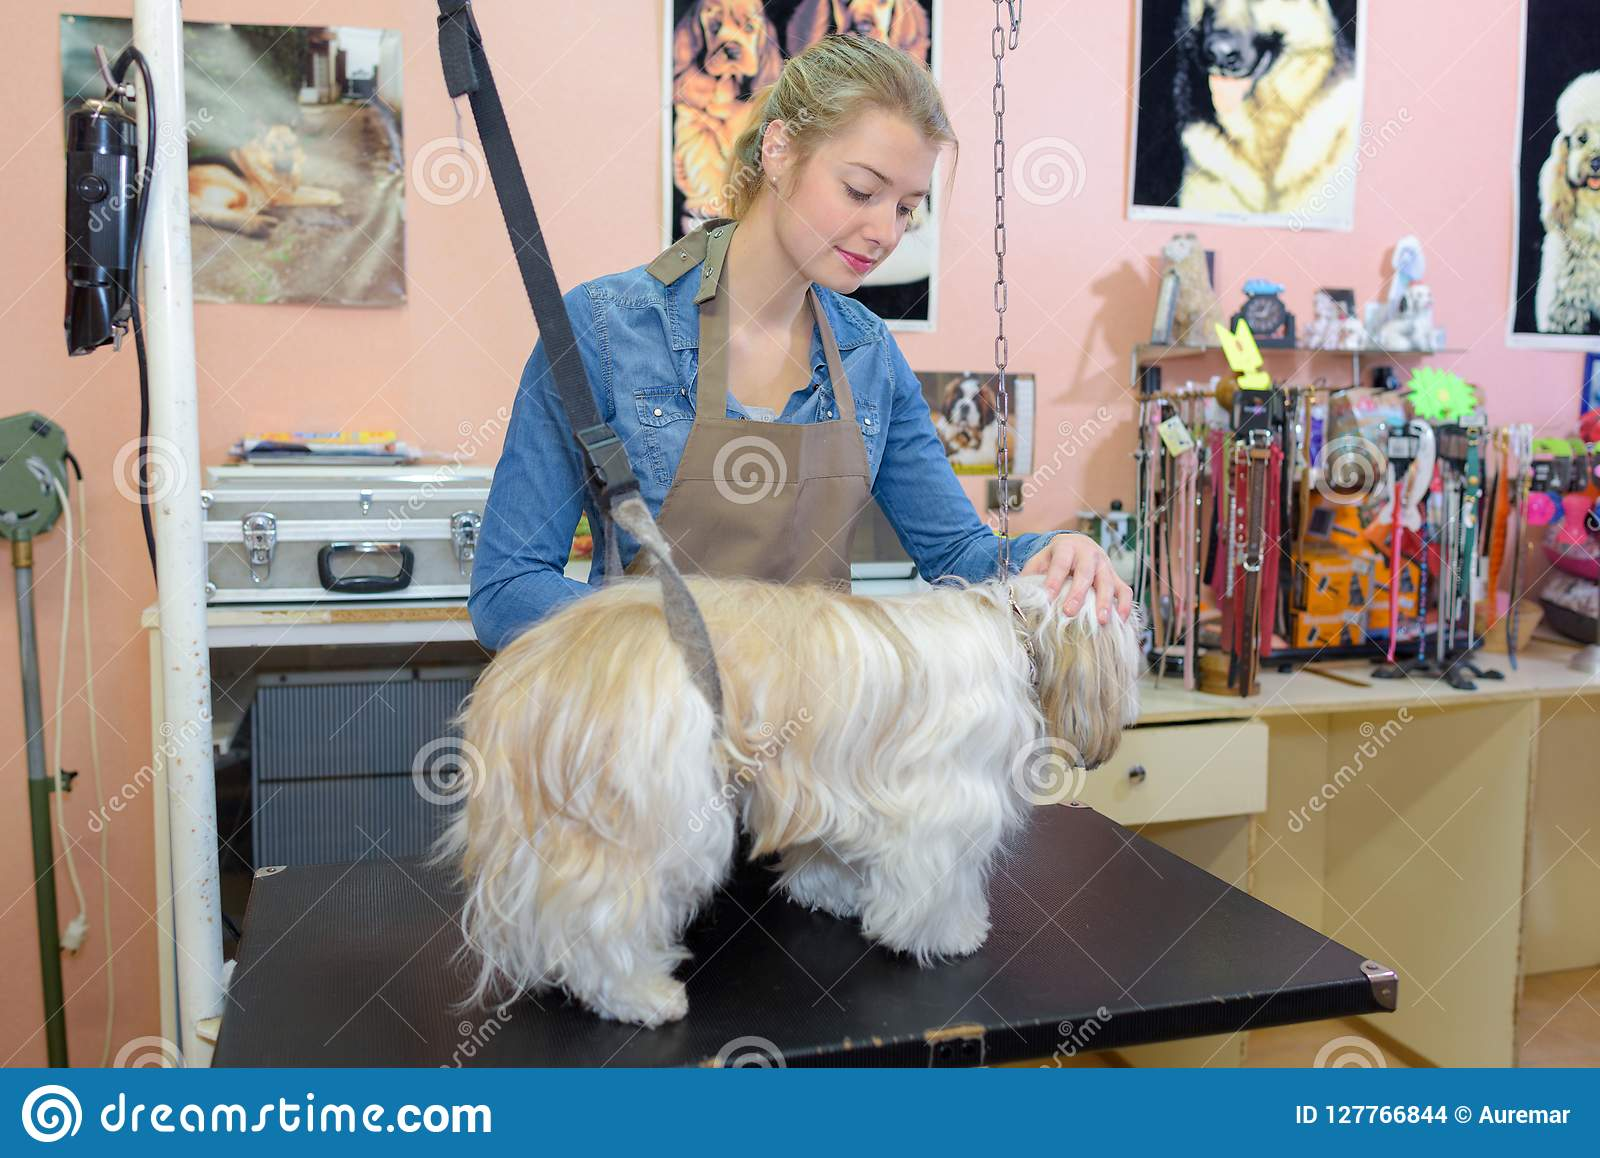 Cute Little Dog At Groomer Salon Stock Photo Image Of Grooming